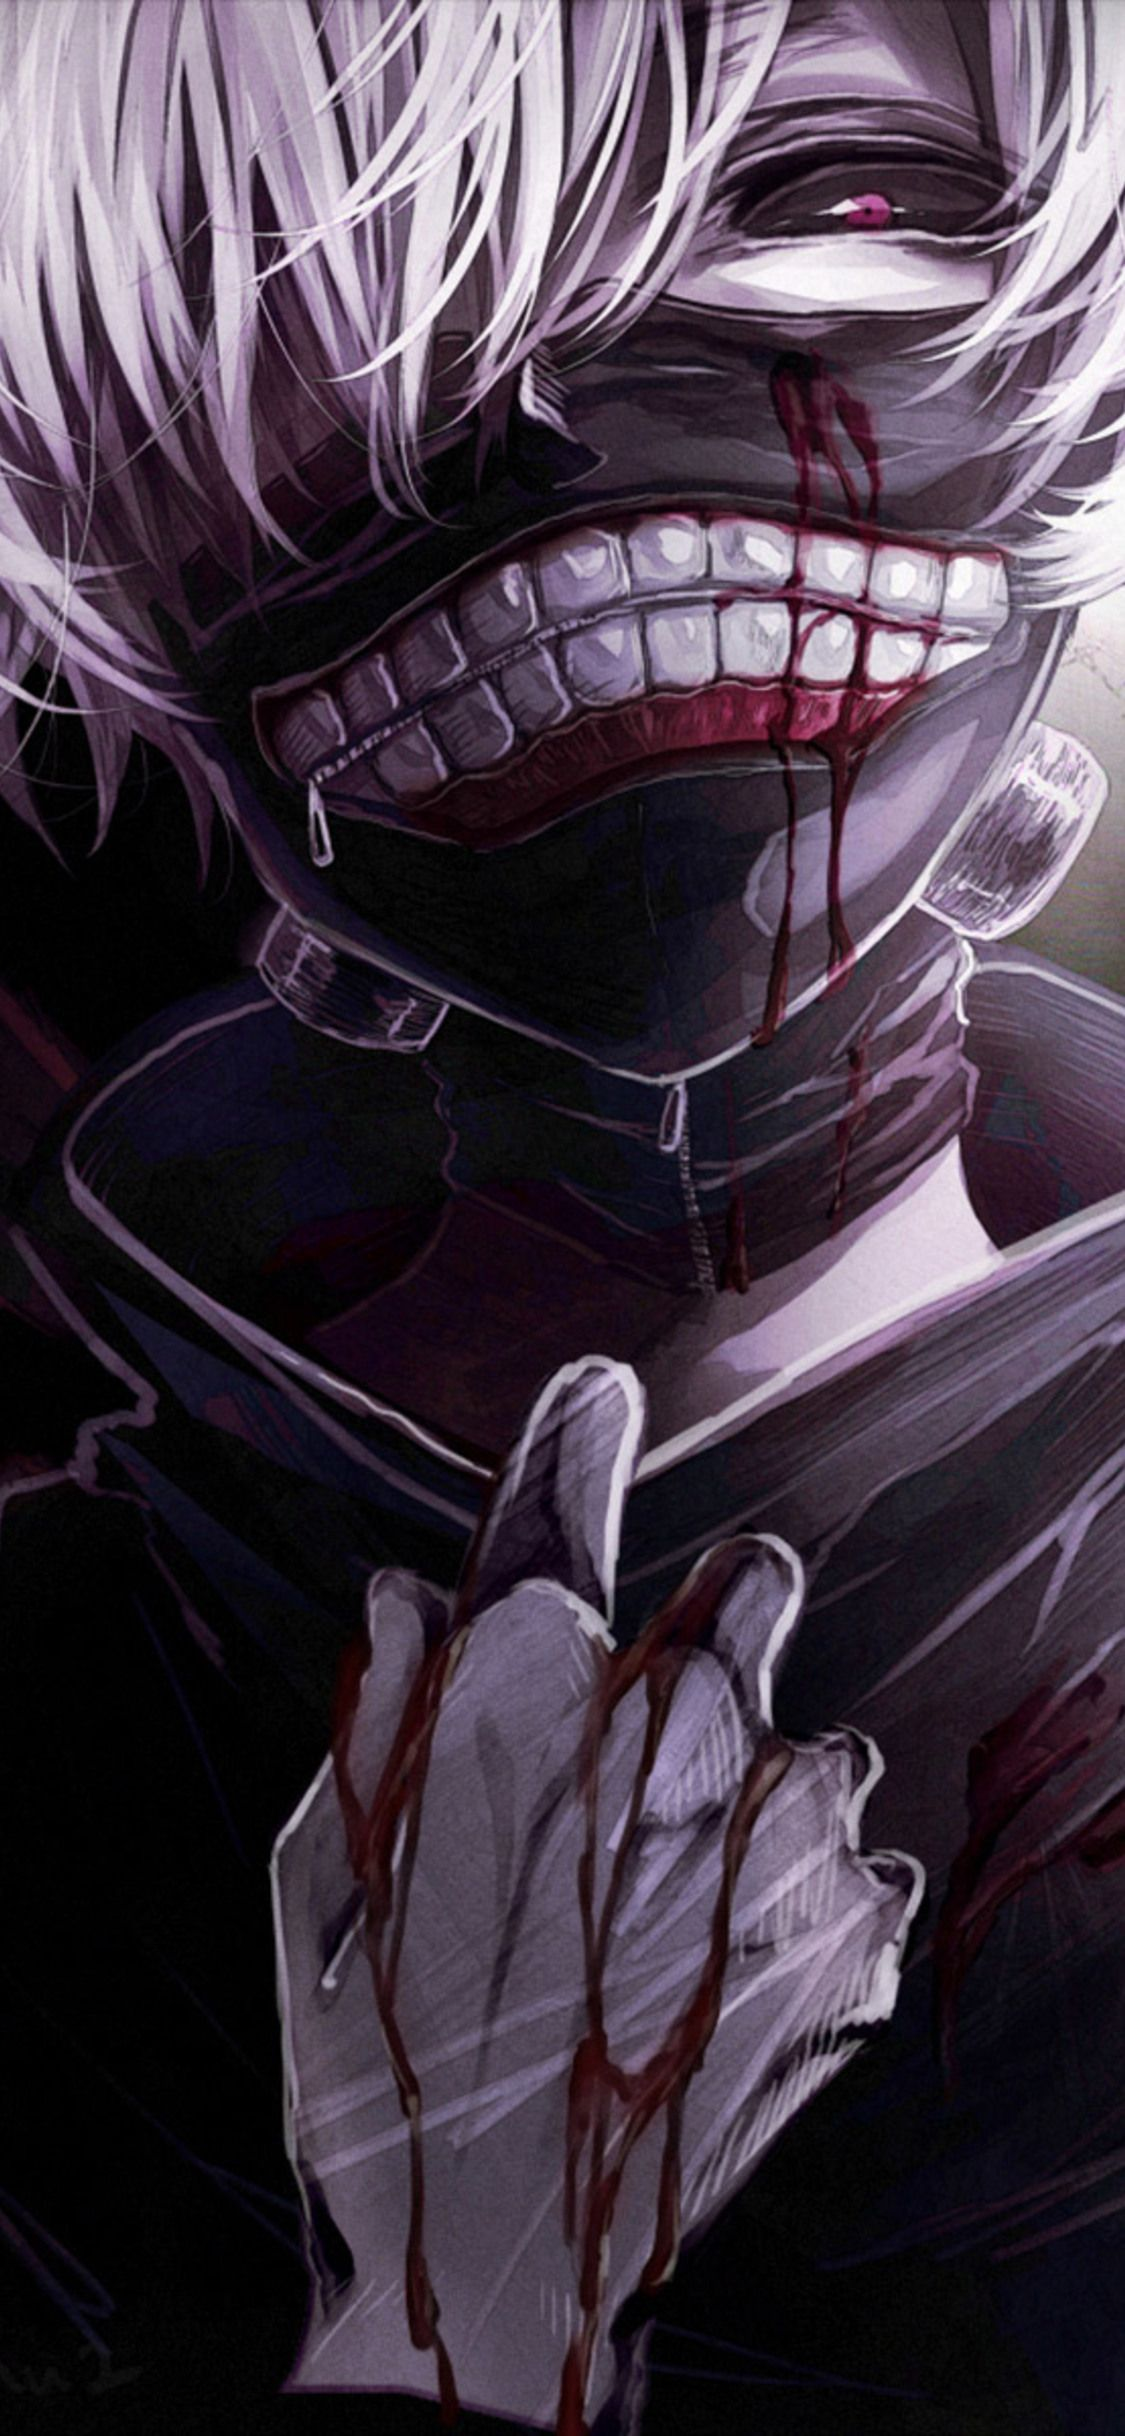 46 Best Free 4k Tokyo Ghoul Iphone Wallpapers Wallpaperaccess